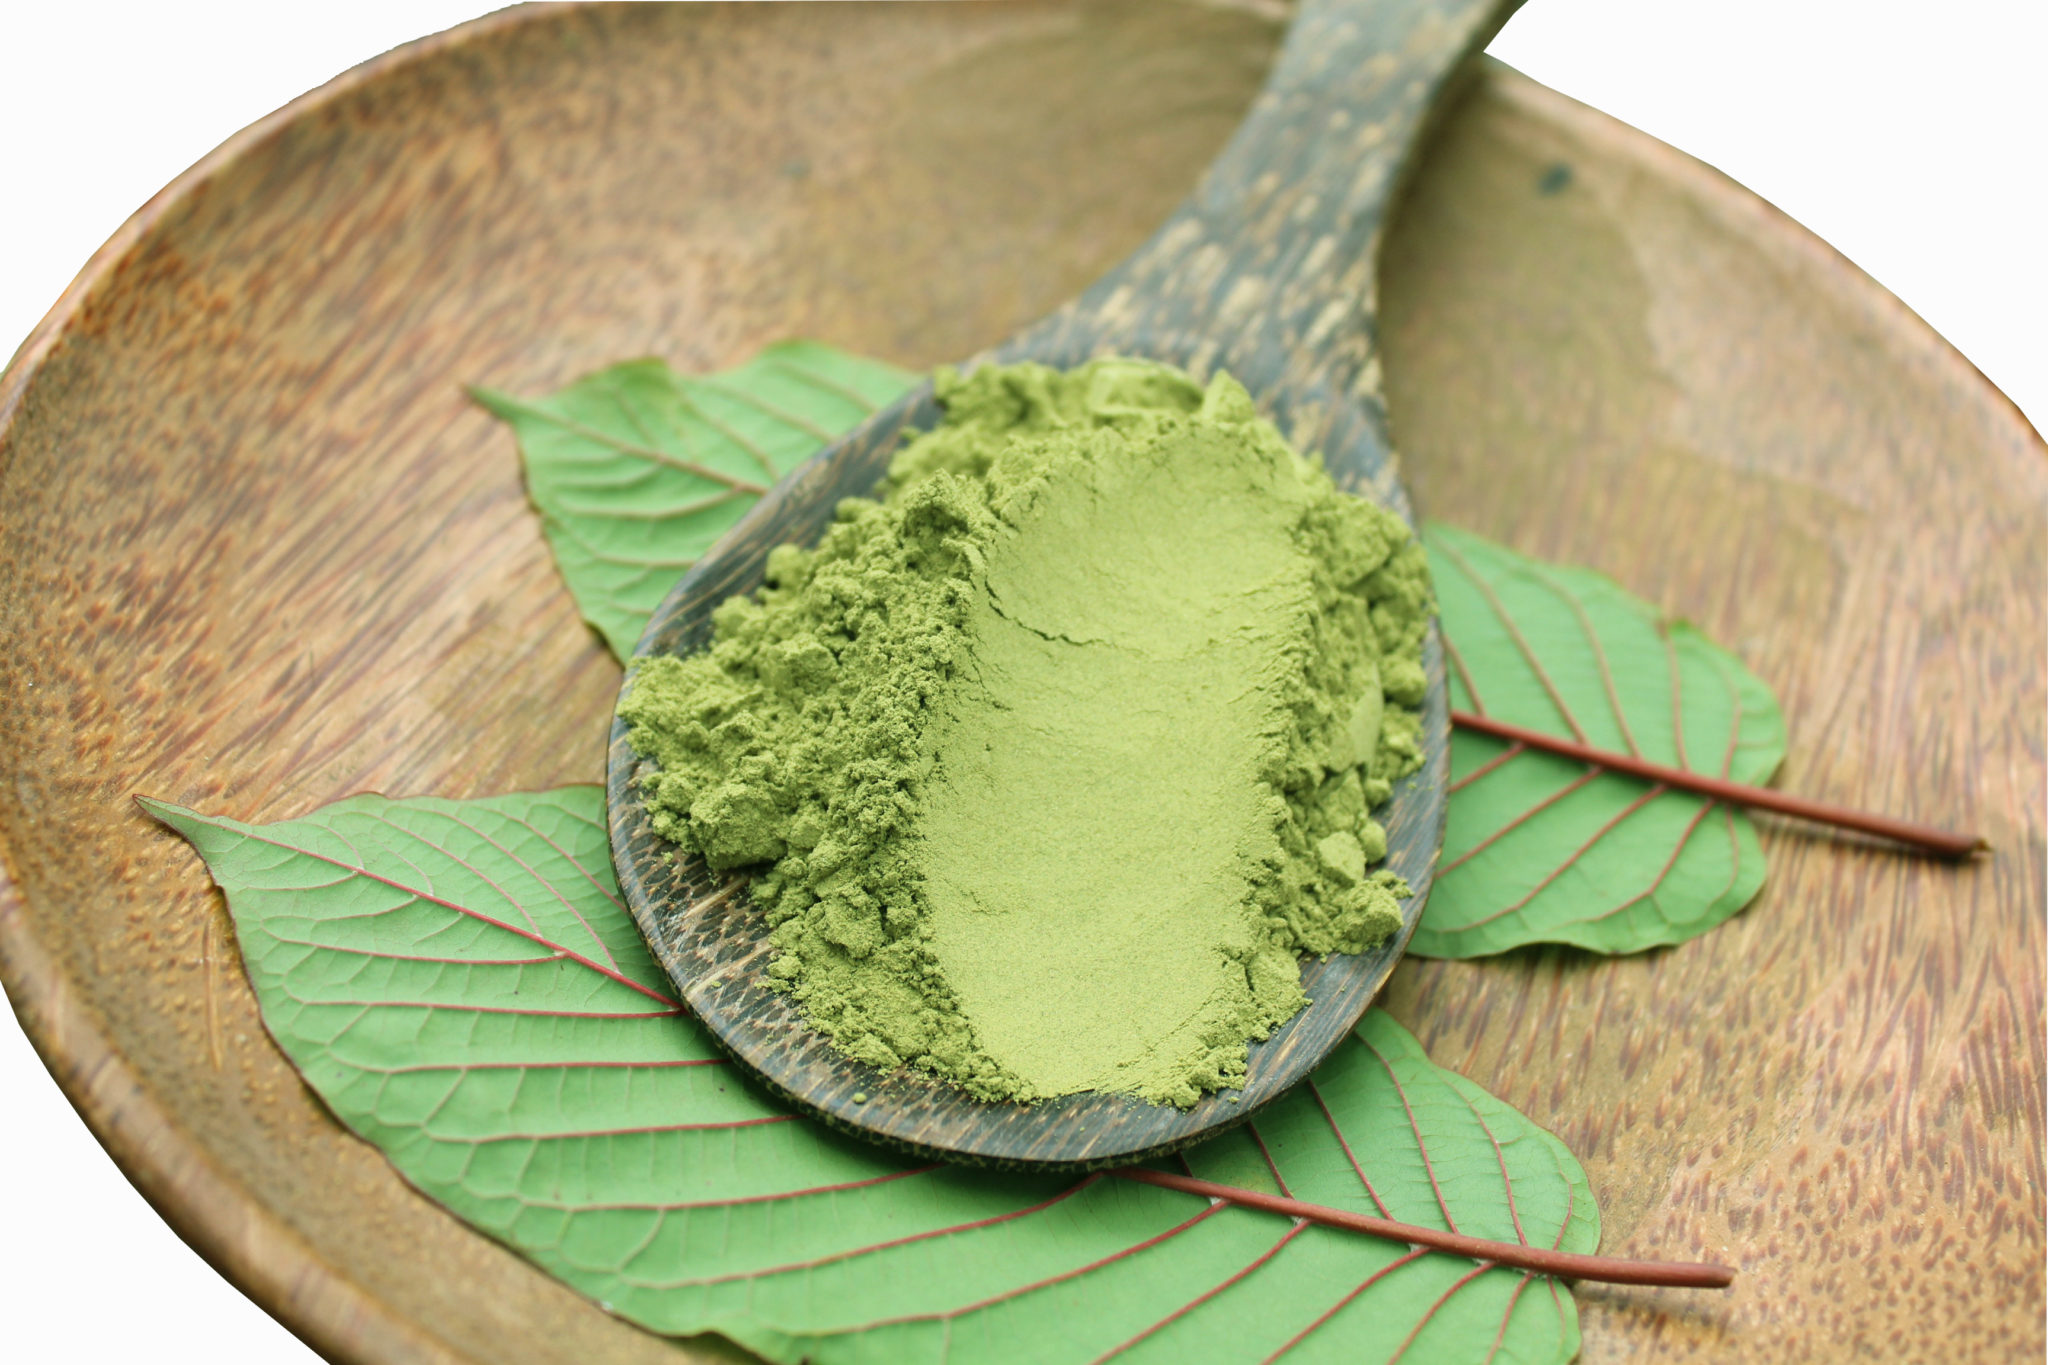 How to Use Kratom?